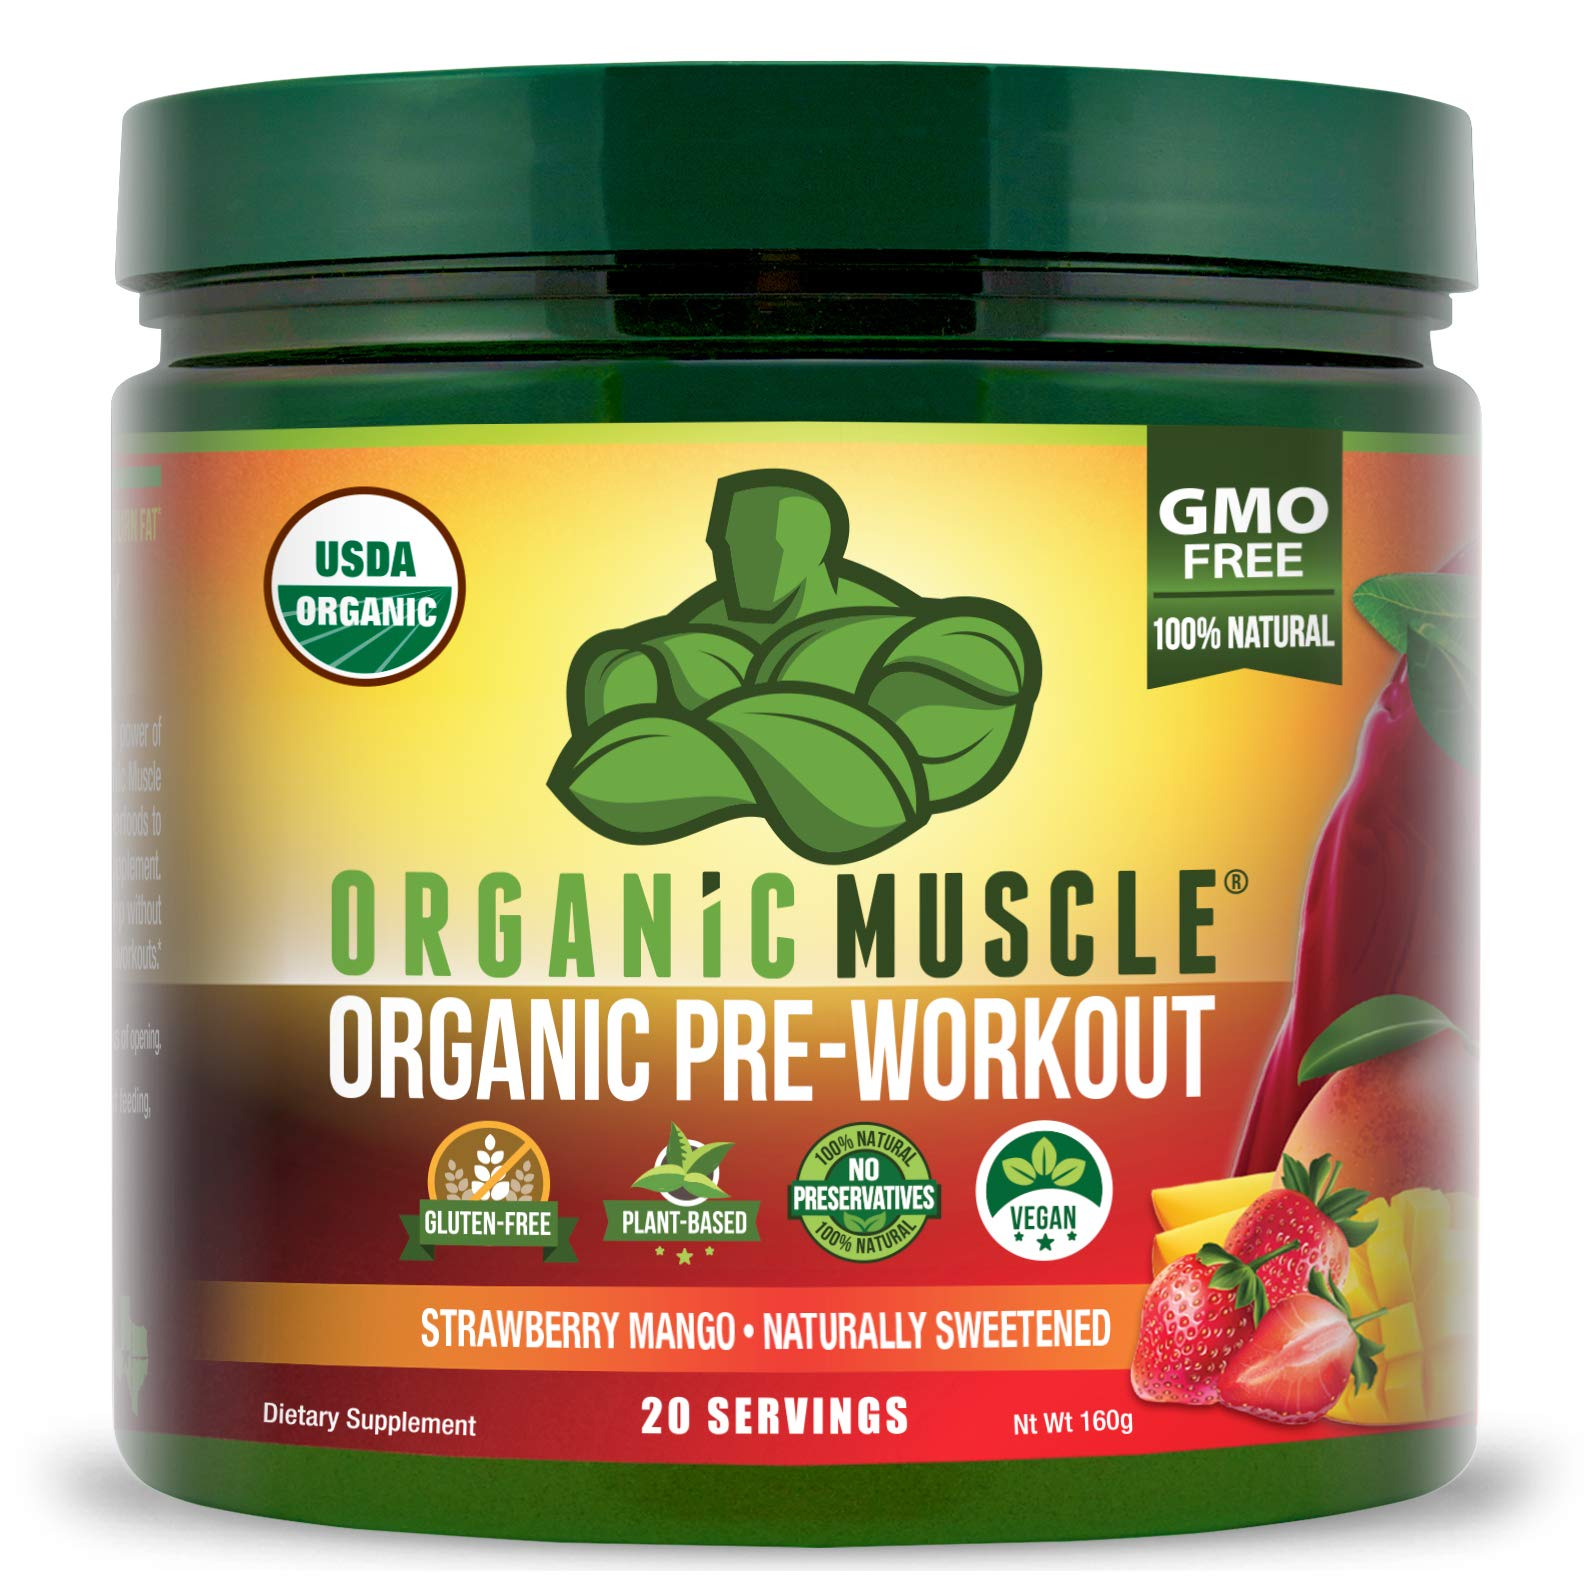 ORGANIC MUSCLE #1 Rated Organic Pre Workout Powder – **New Flavor** Natural Vegan Keto Pre-Workout & Organic Energy Supplement for Men & Women- Non-GMO, Paleo, Plant Based – Strawberry Mango – 160g